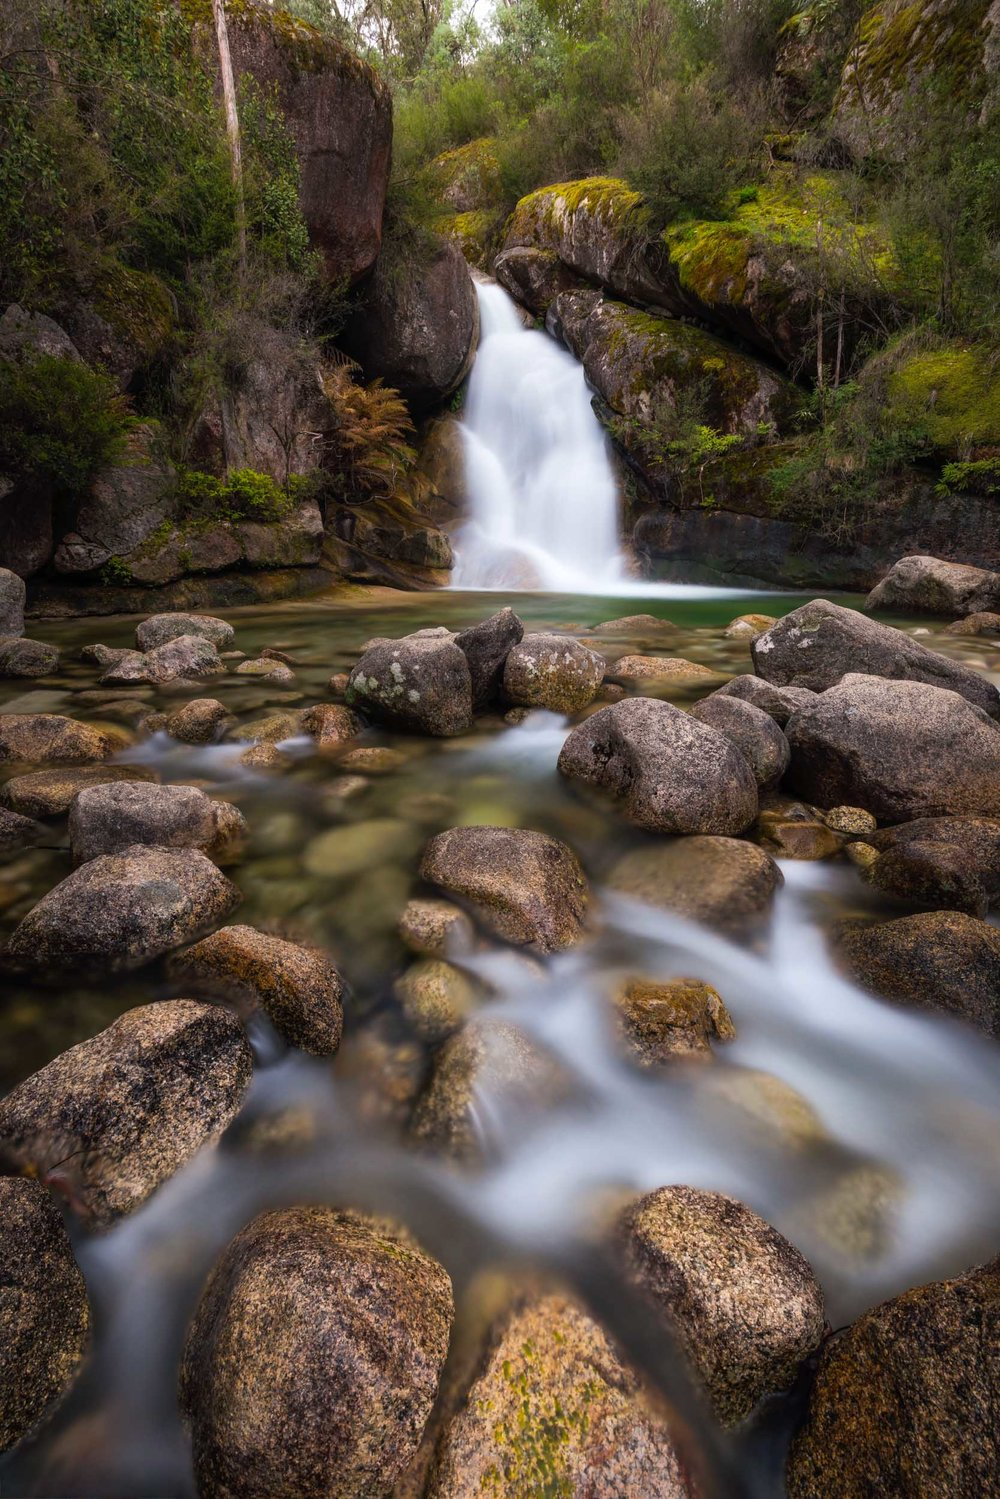 Cold as Ice - Ladies Bath Falls, Mount Buffalo - Victoria